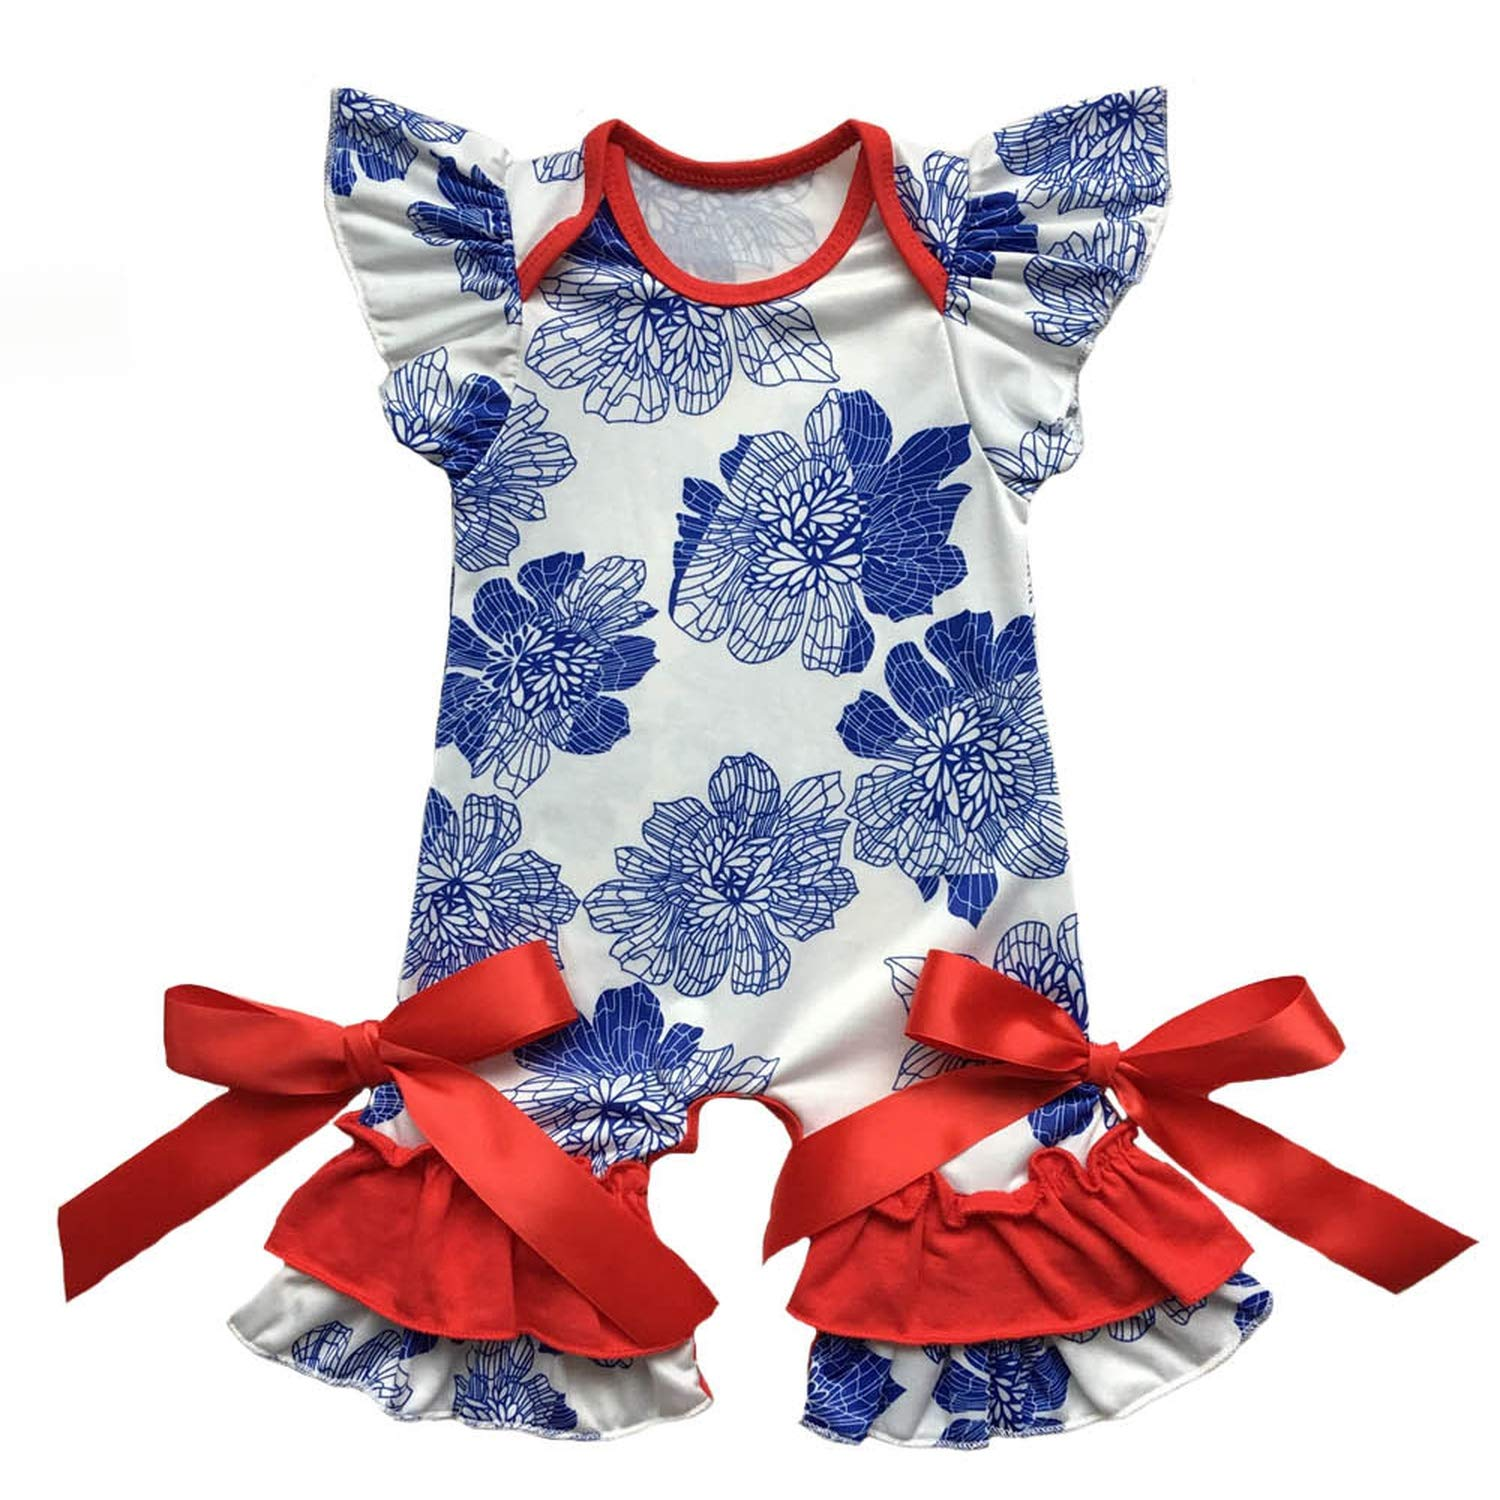 Infant Clothes Newborn Clothing in 4Th of July Baby Gown Romper Flutter Sleeve Capris Leg Baby Romper Jumpsuit